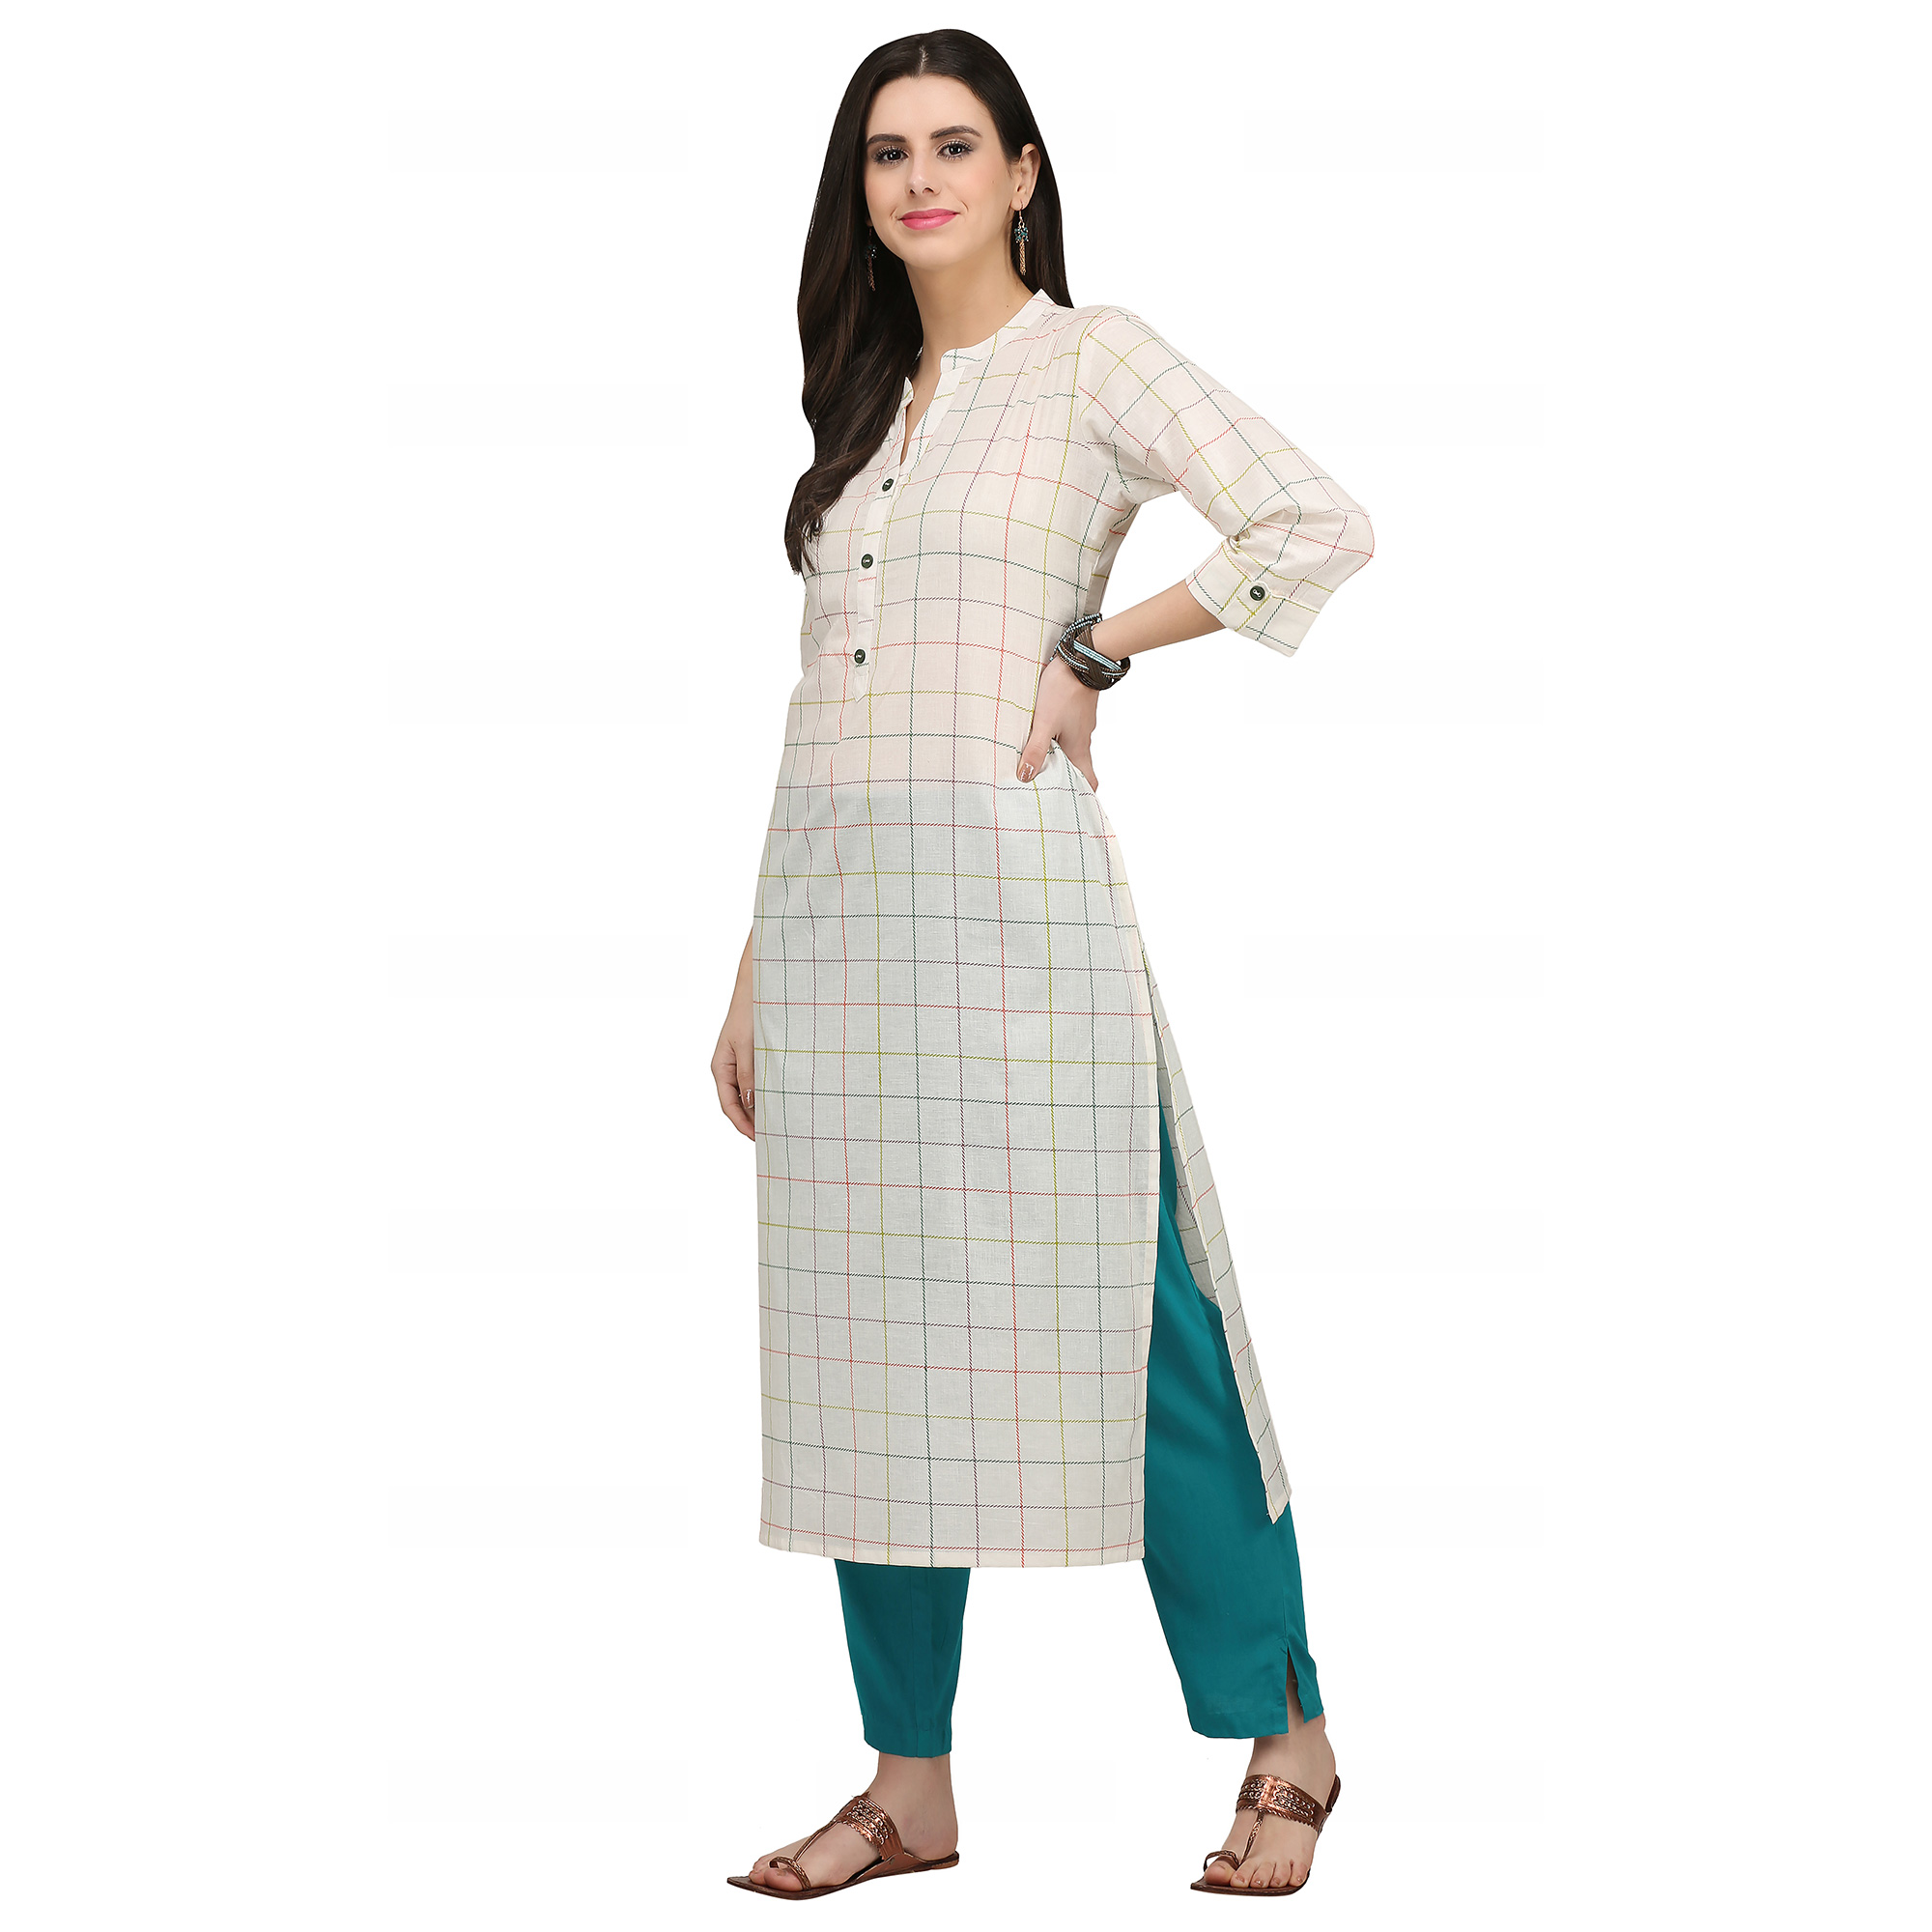 Mesmeric Off White Colored Casual Wear Printed Cotton Kurti